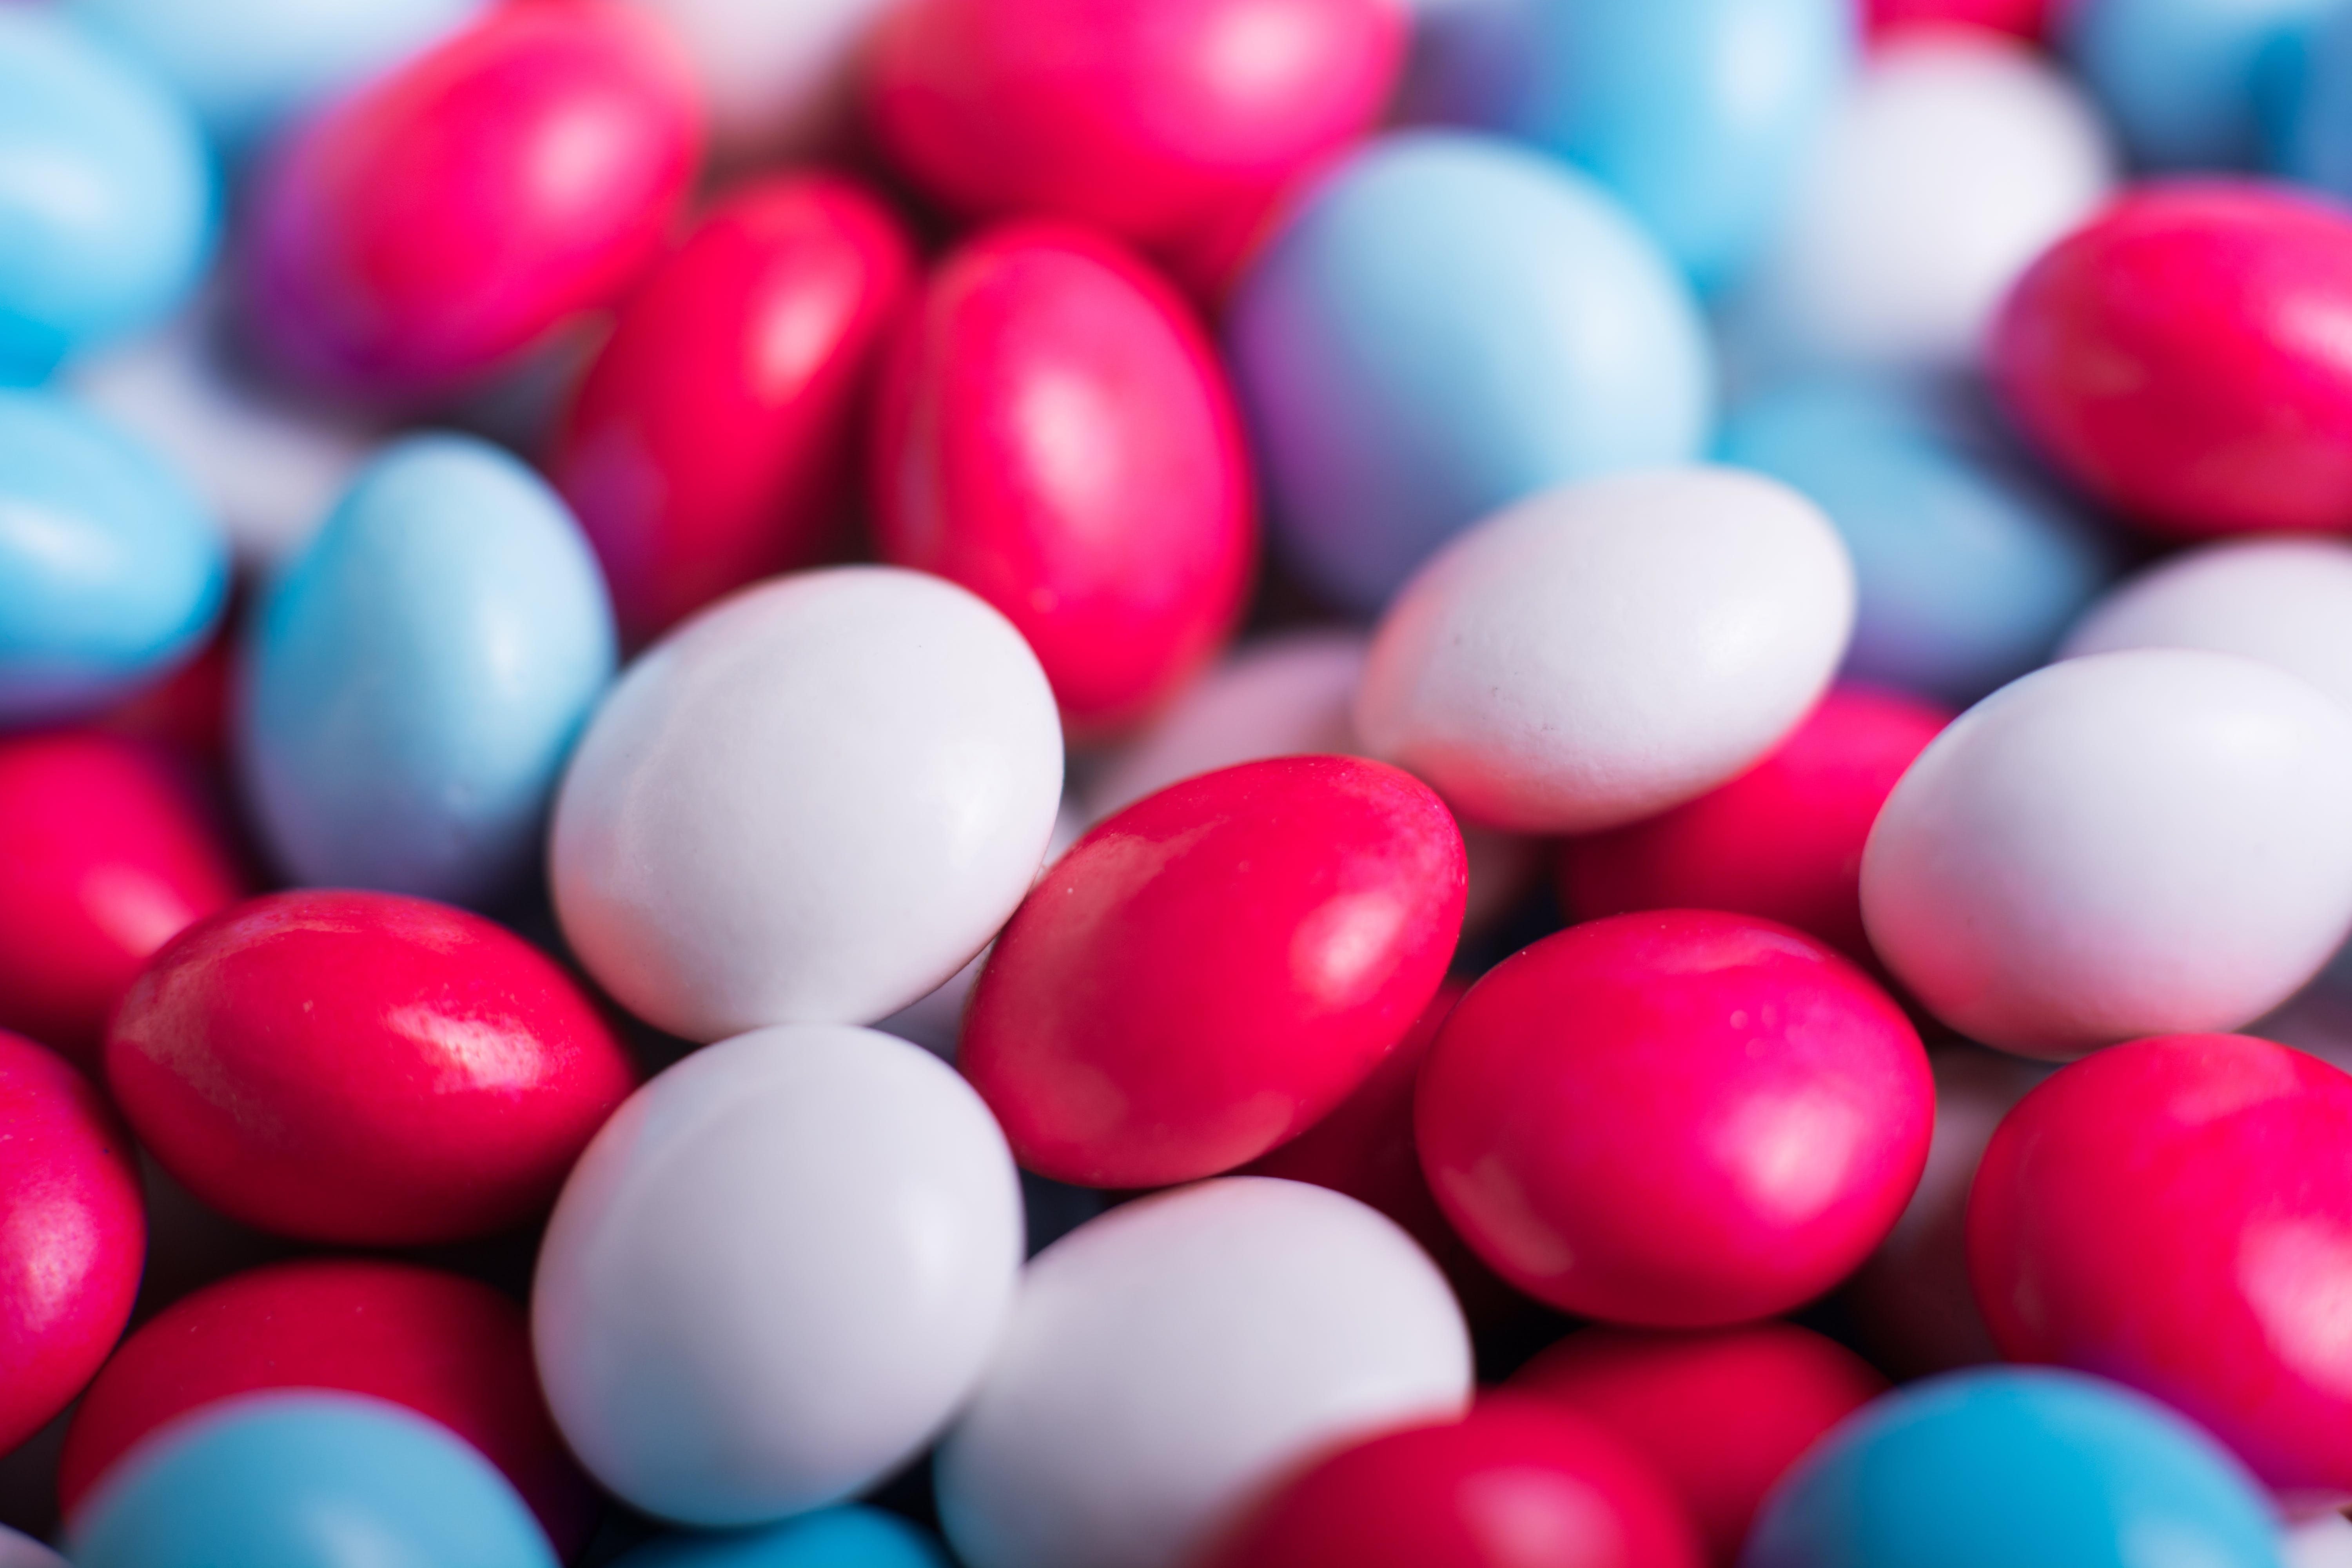 Close-up Photography Of Candies